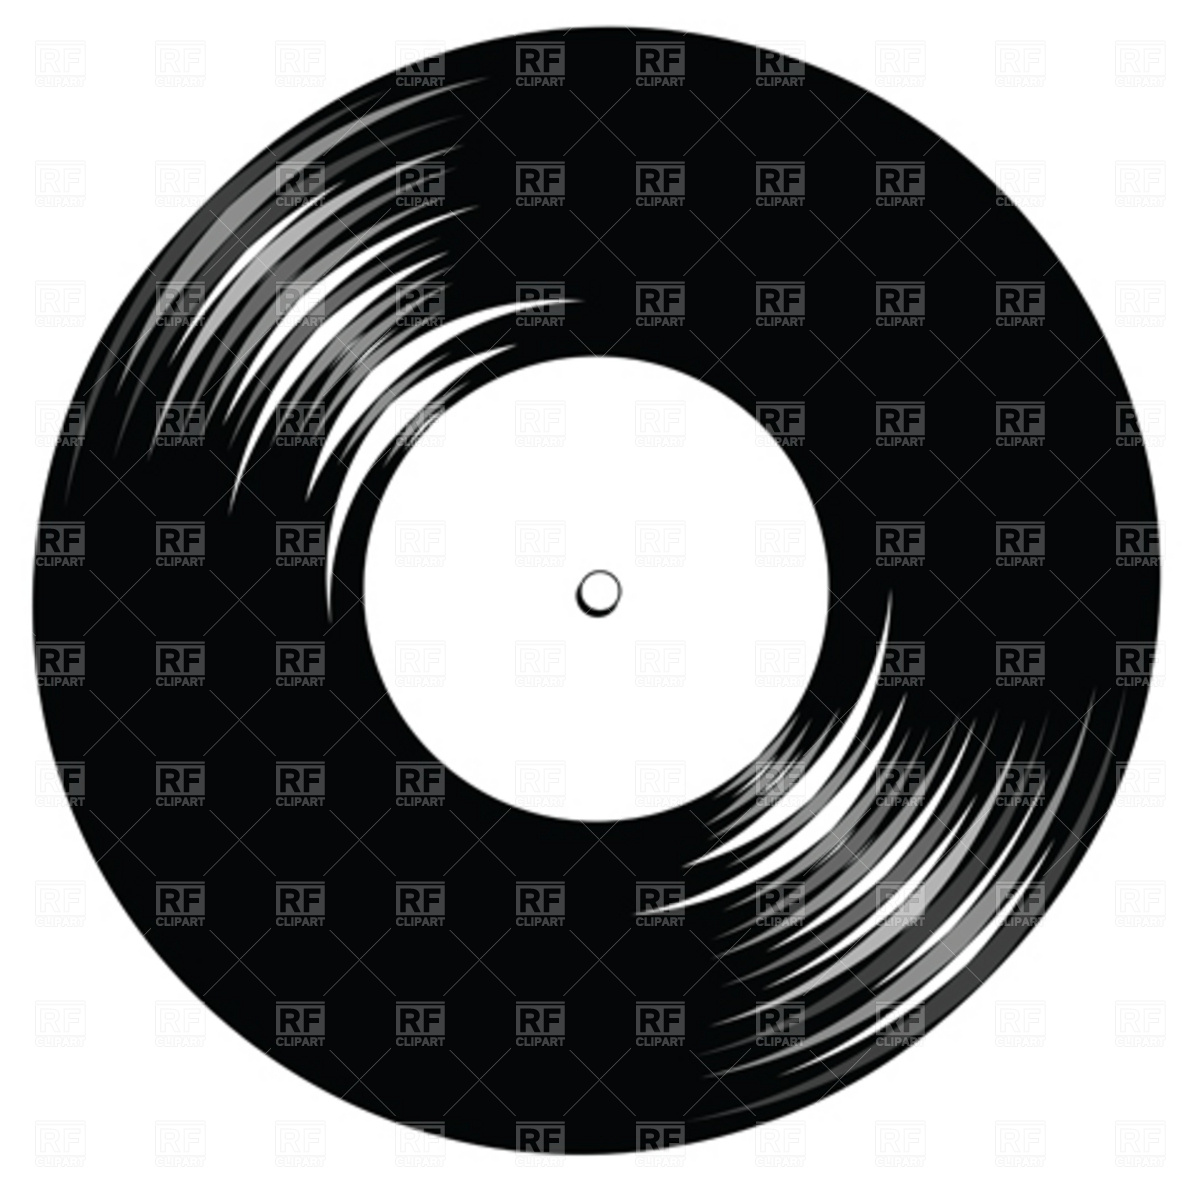 Lp Record Clipart.